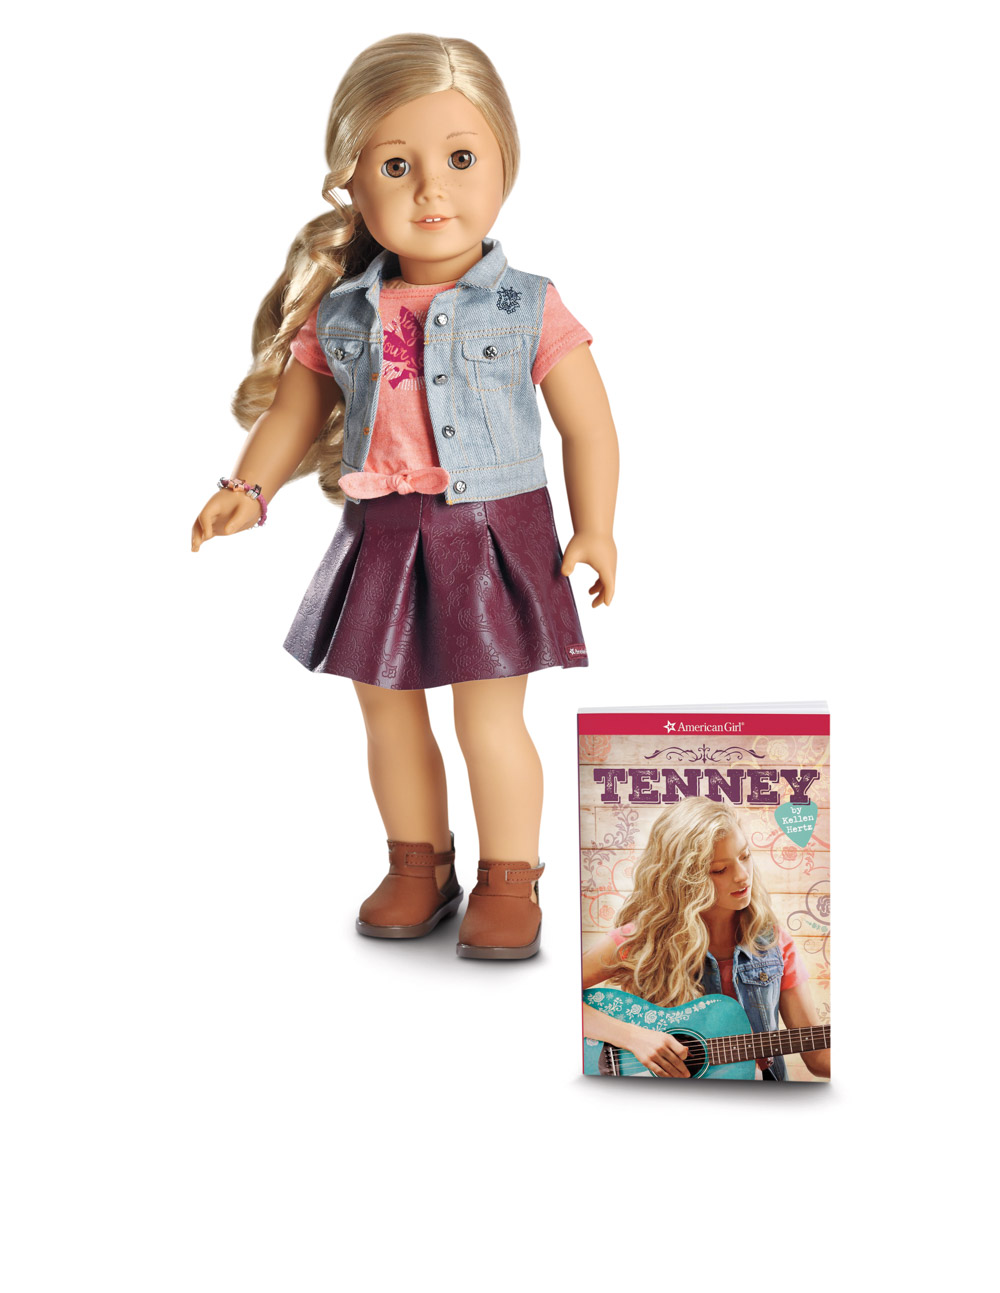 AMERICAN GIRL® - TENNEY GRANT DOLL & BOOK